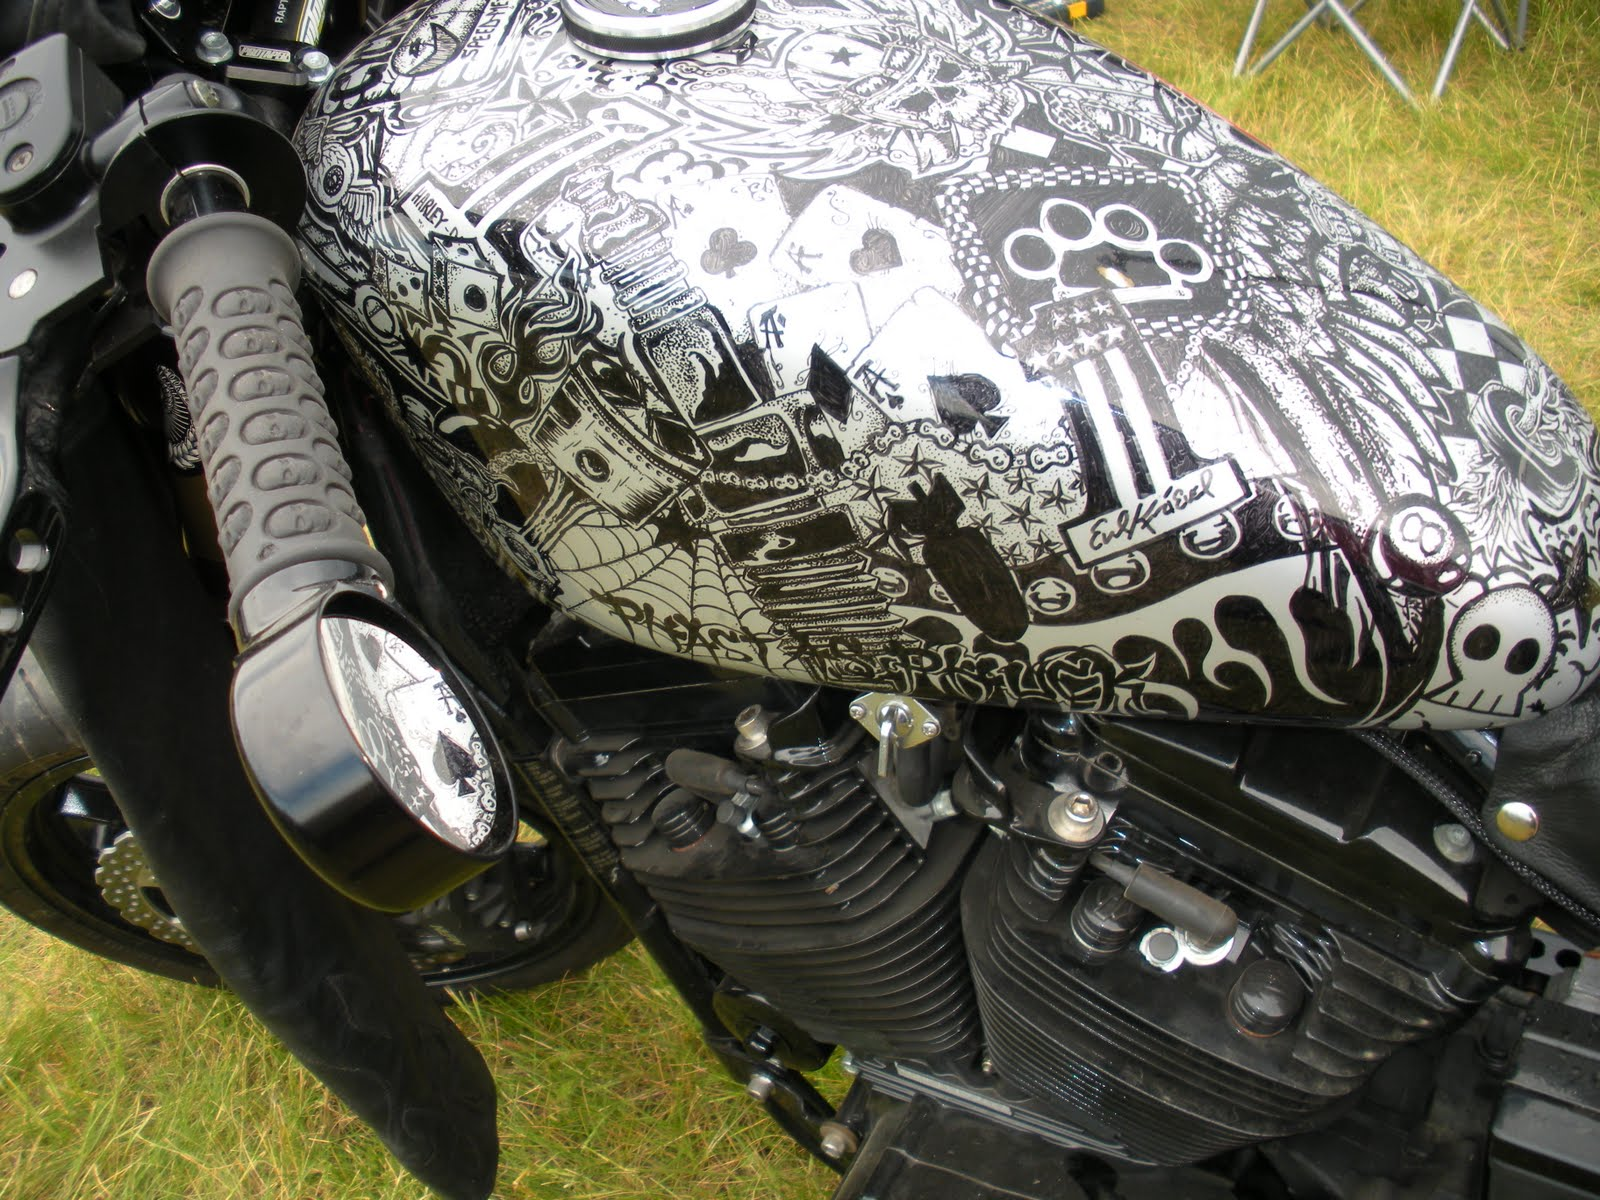 Magoo S Motorsickles Sturgis 2011 Sharpie Gas Tank Awesome